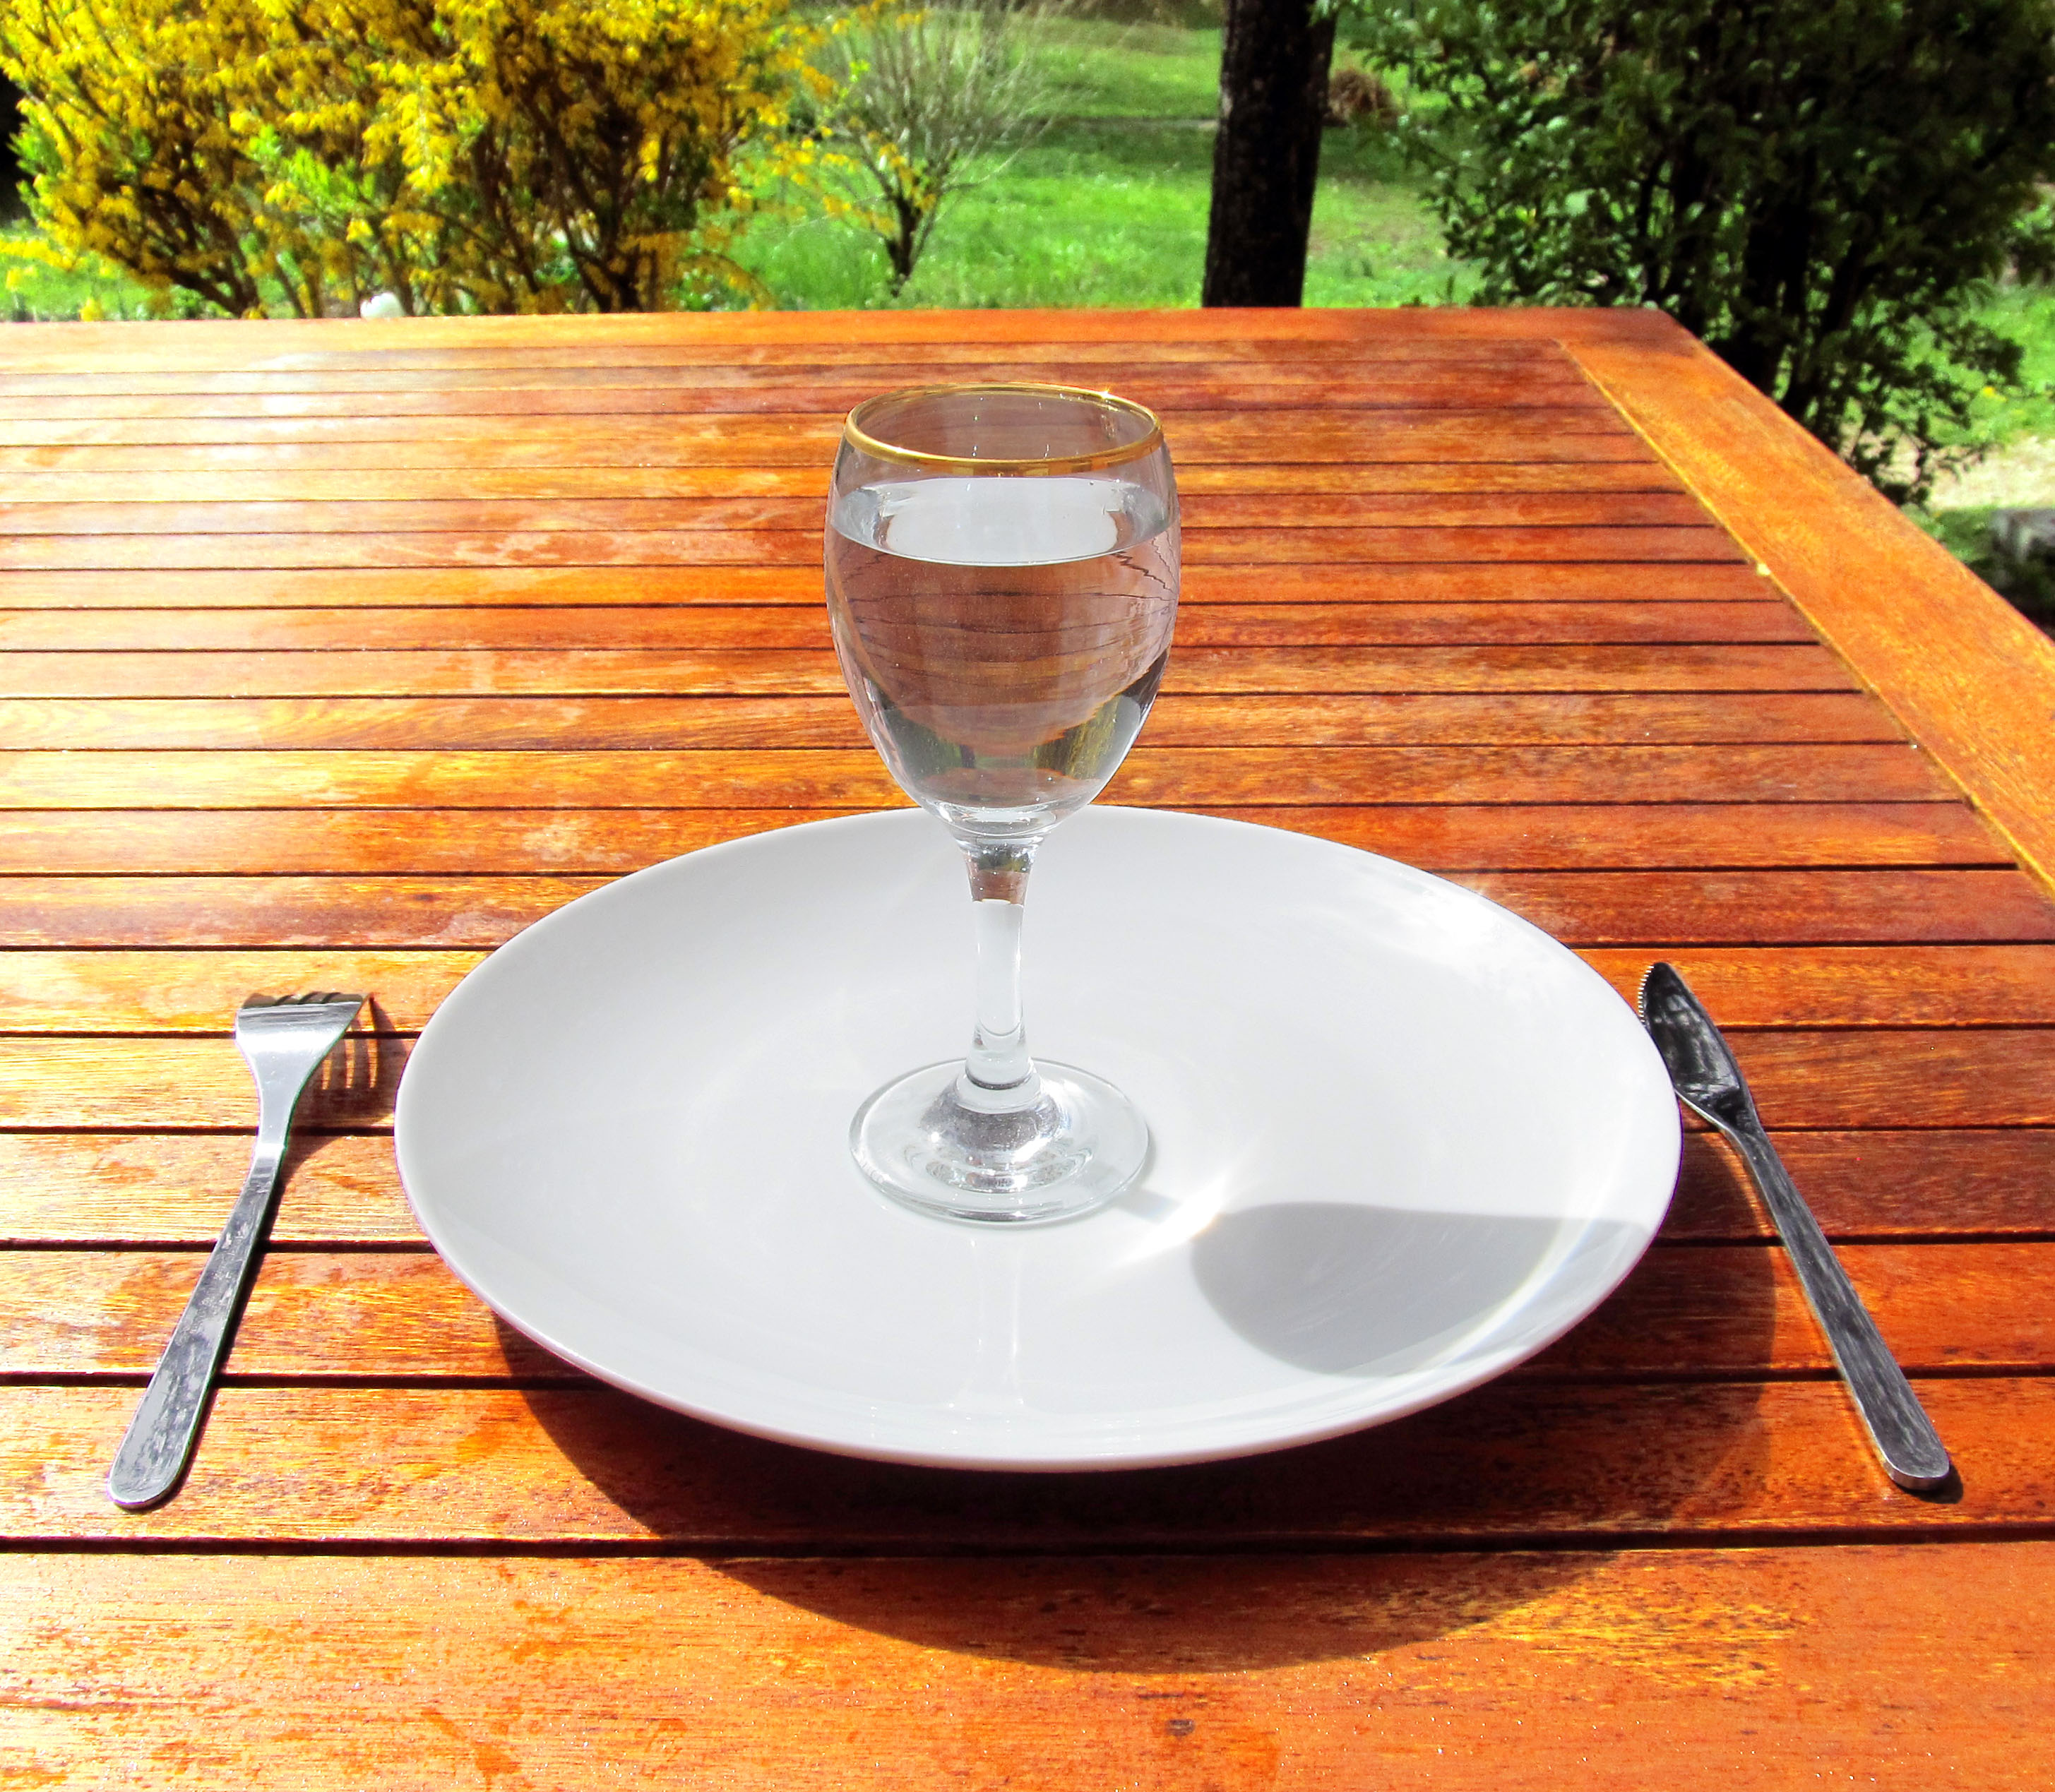 Give yourself an energy boost with intermittent fasting